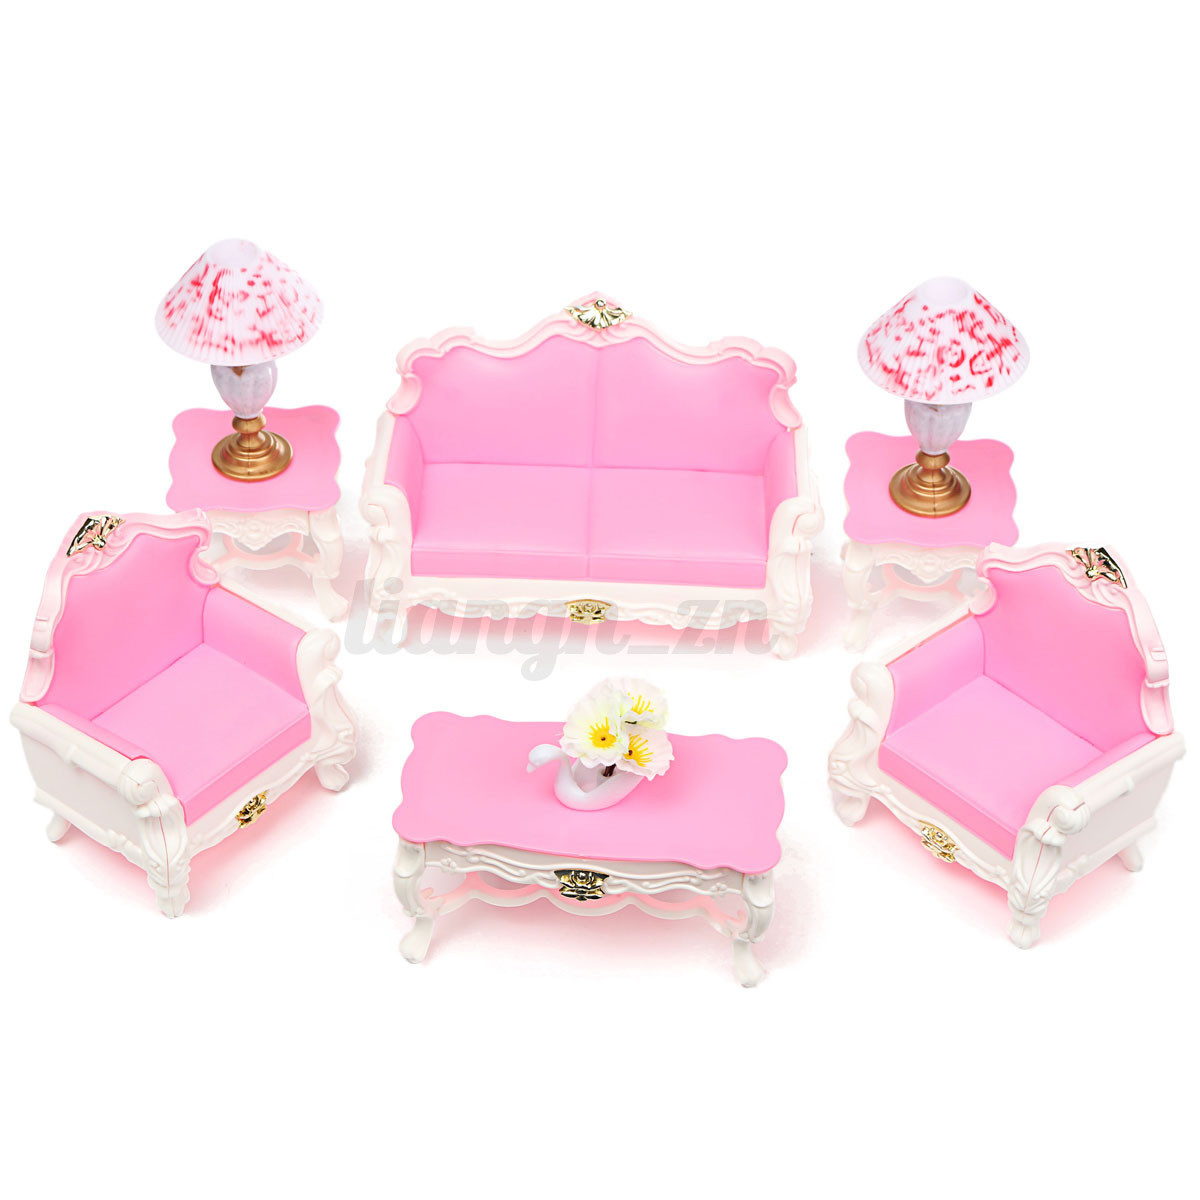 mobilier meuble pour barbie poup es maison furniture. Black Bedroom Furniture Sets. Home Design Ideas